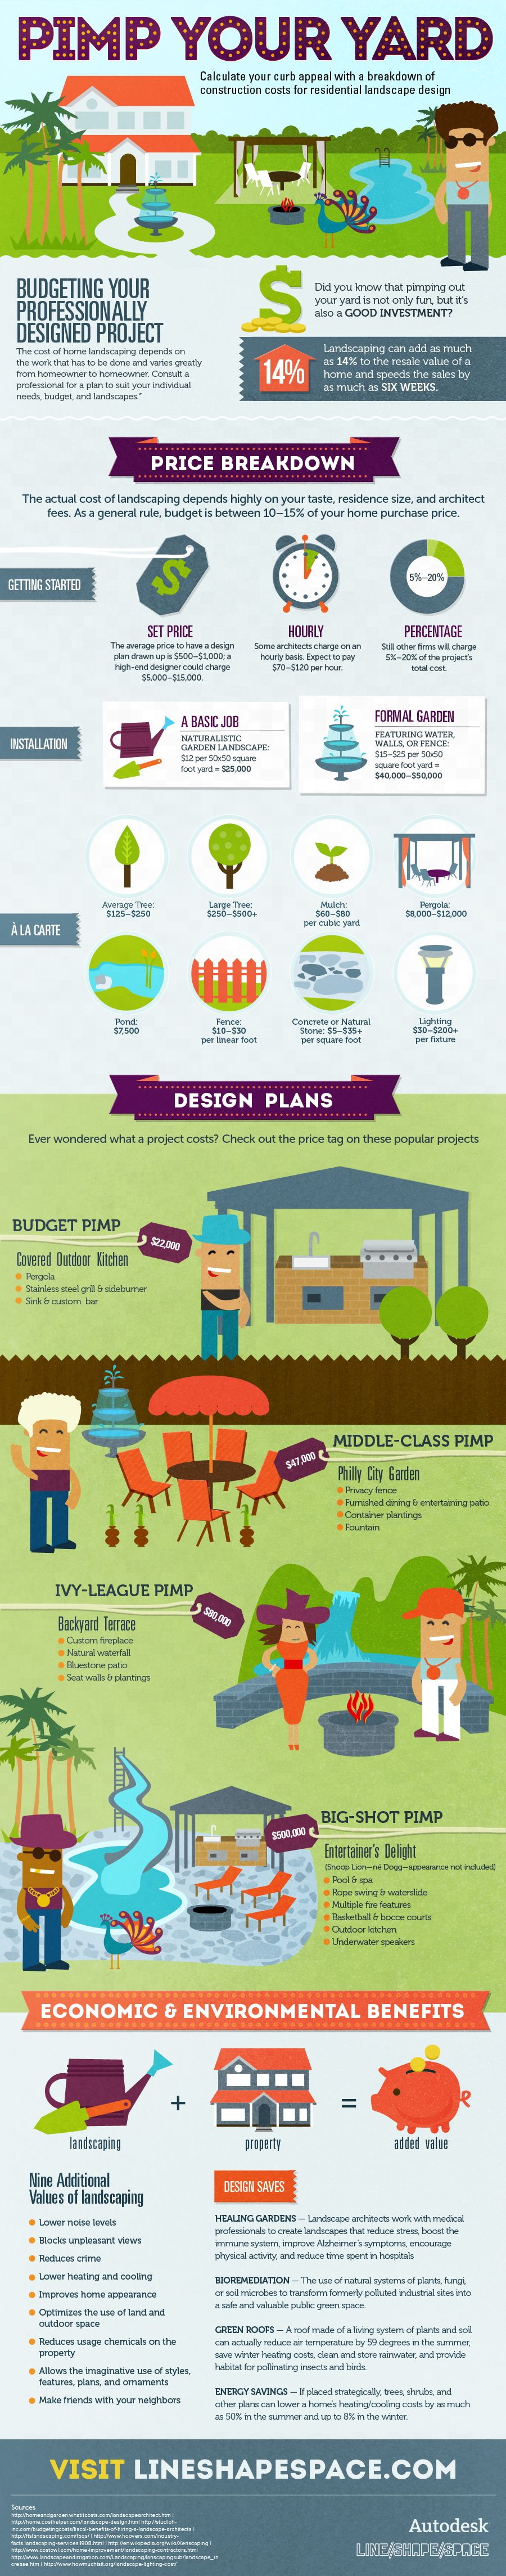 landscape architecture - great infographic for planning landscaping budget